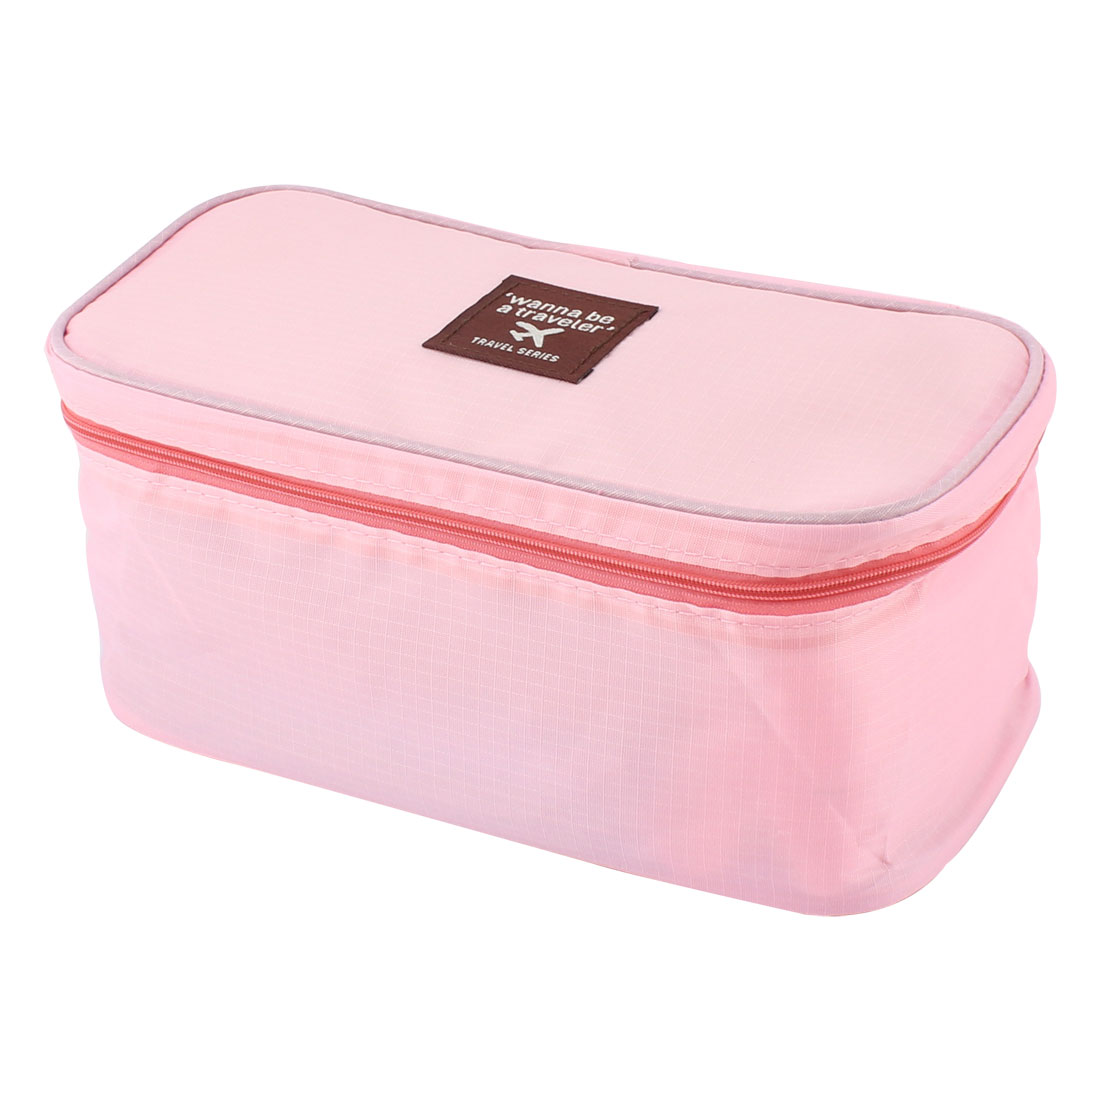 Pink Portable Underwear Bra Toiletry Wash Organizer Pouch Box Storage Bag Case